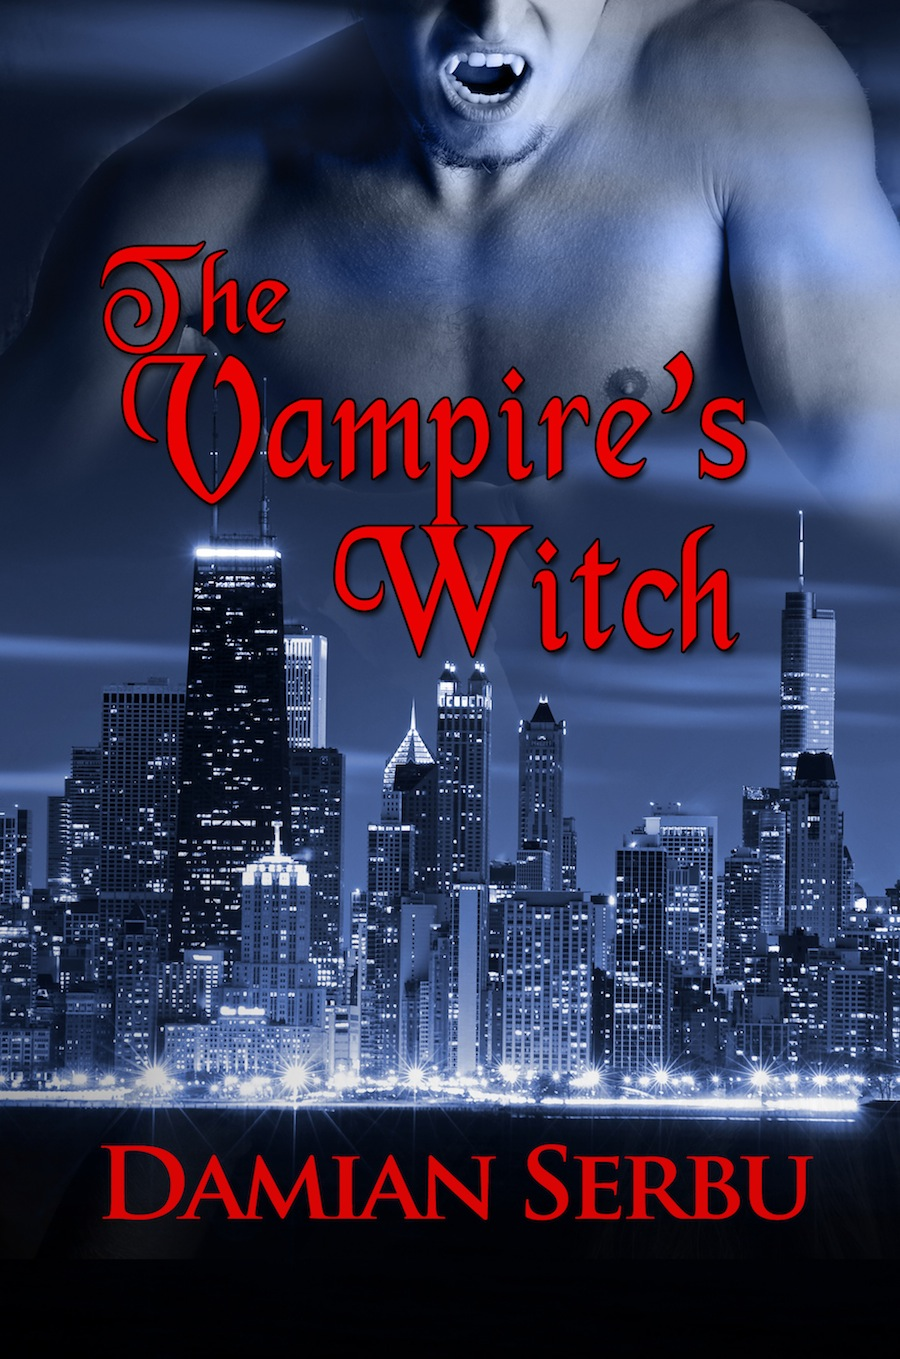 Book Release Party: 'The Vampire's Witch'